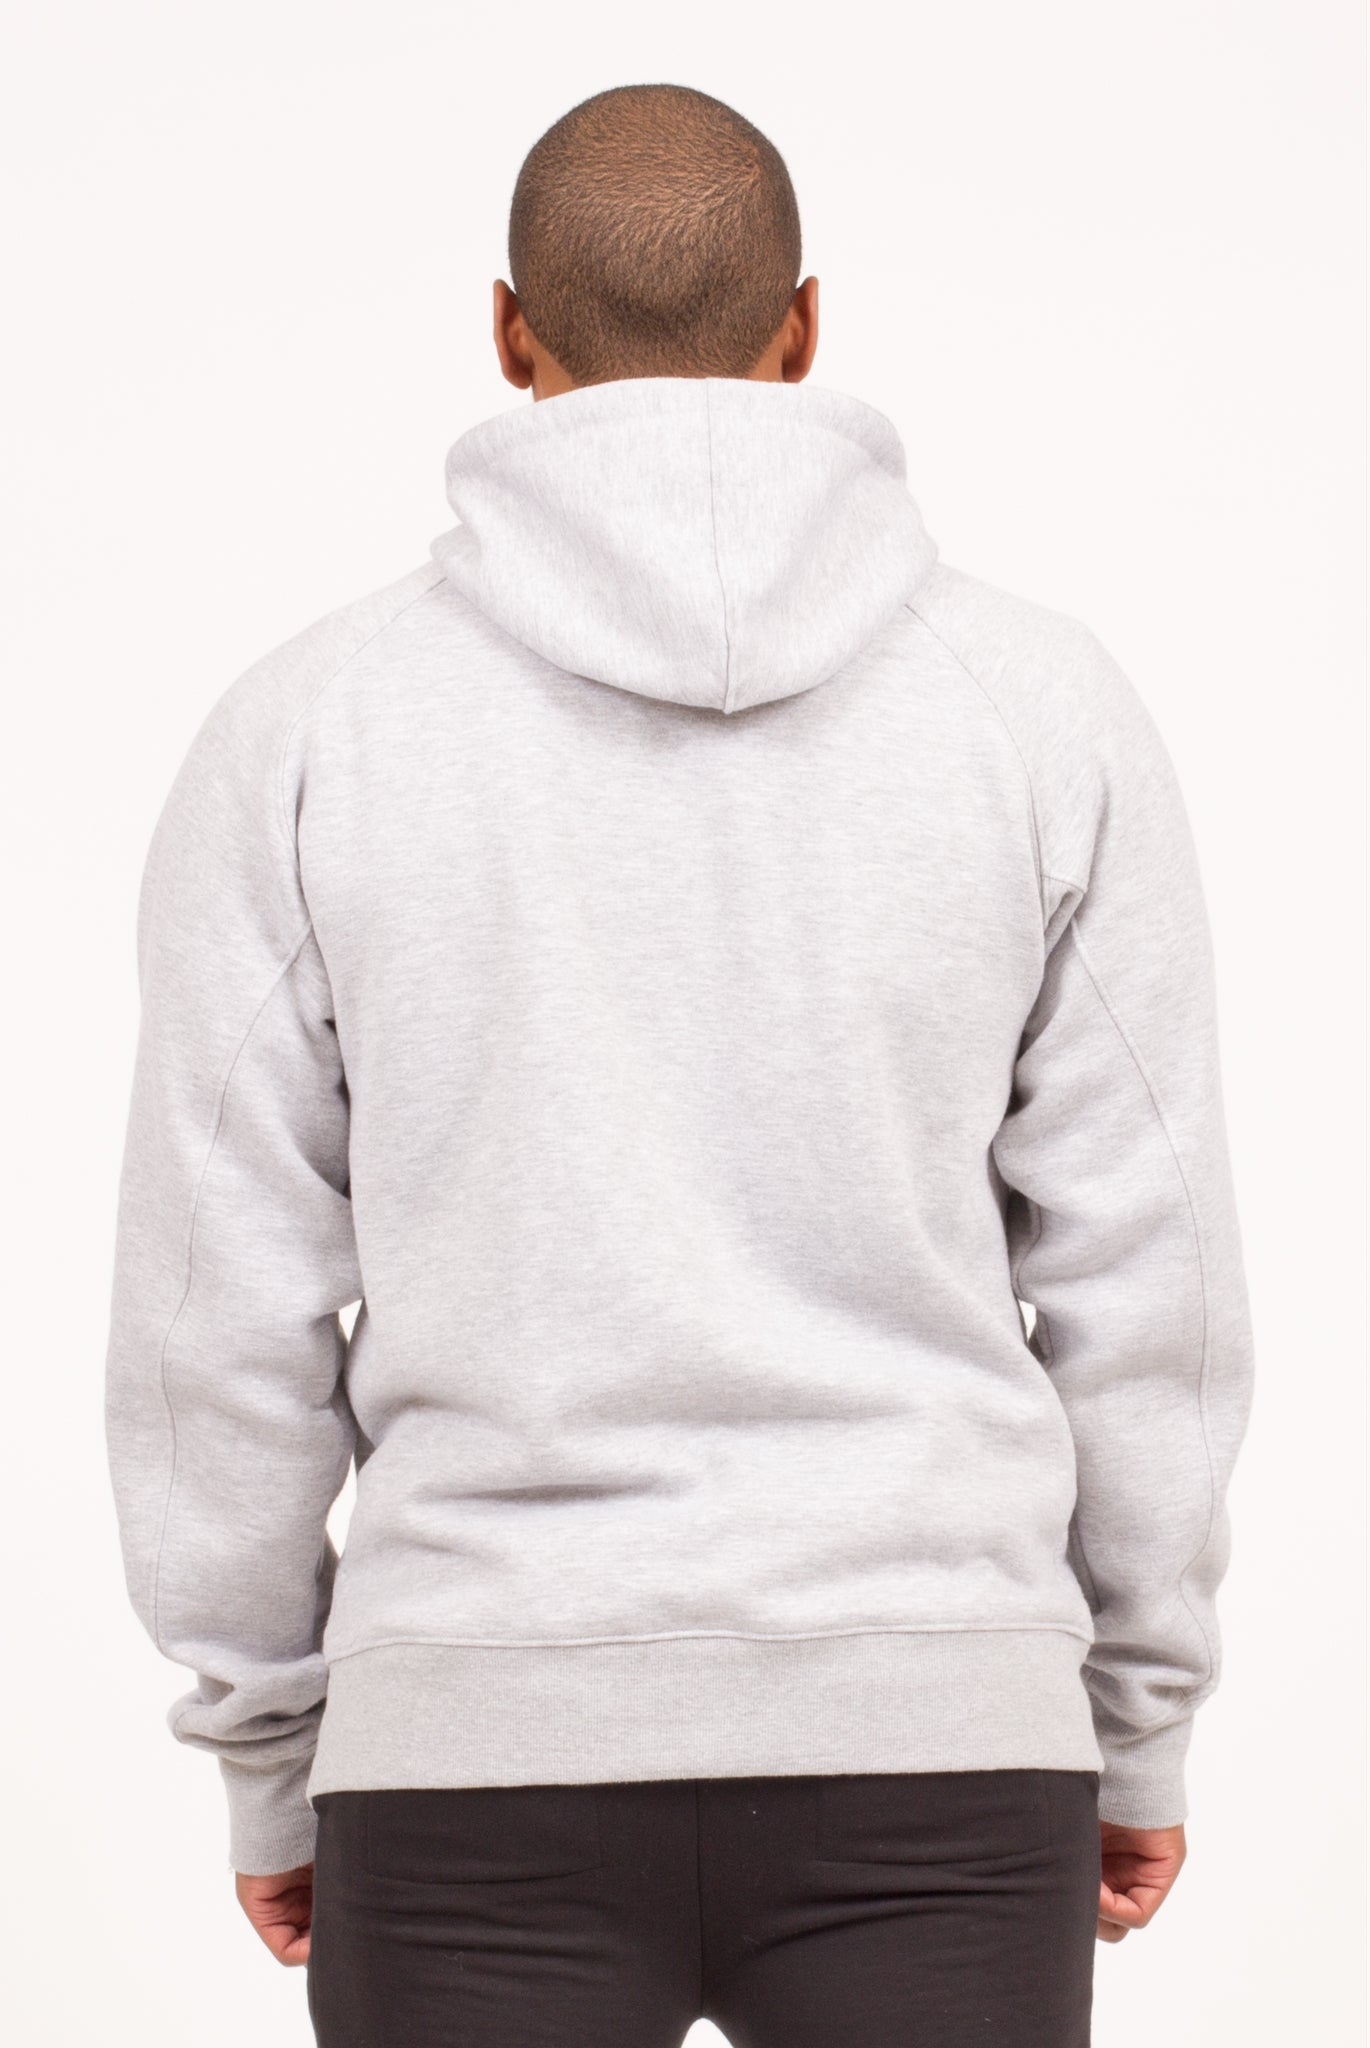 LONG NECK ZIPPERED HOODIE IN HEATHER GREY | Poor Little Rich Boy Clothing